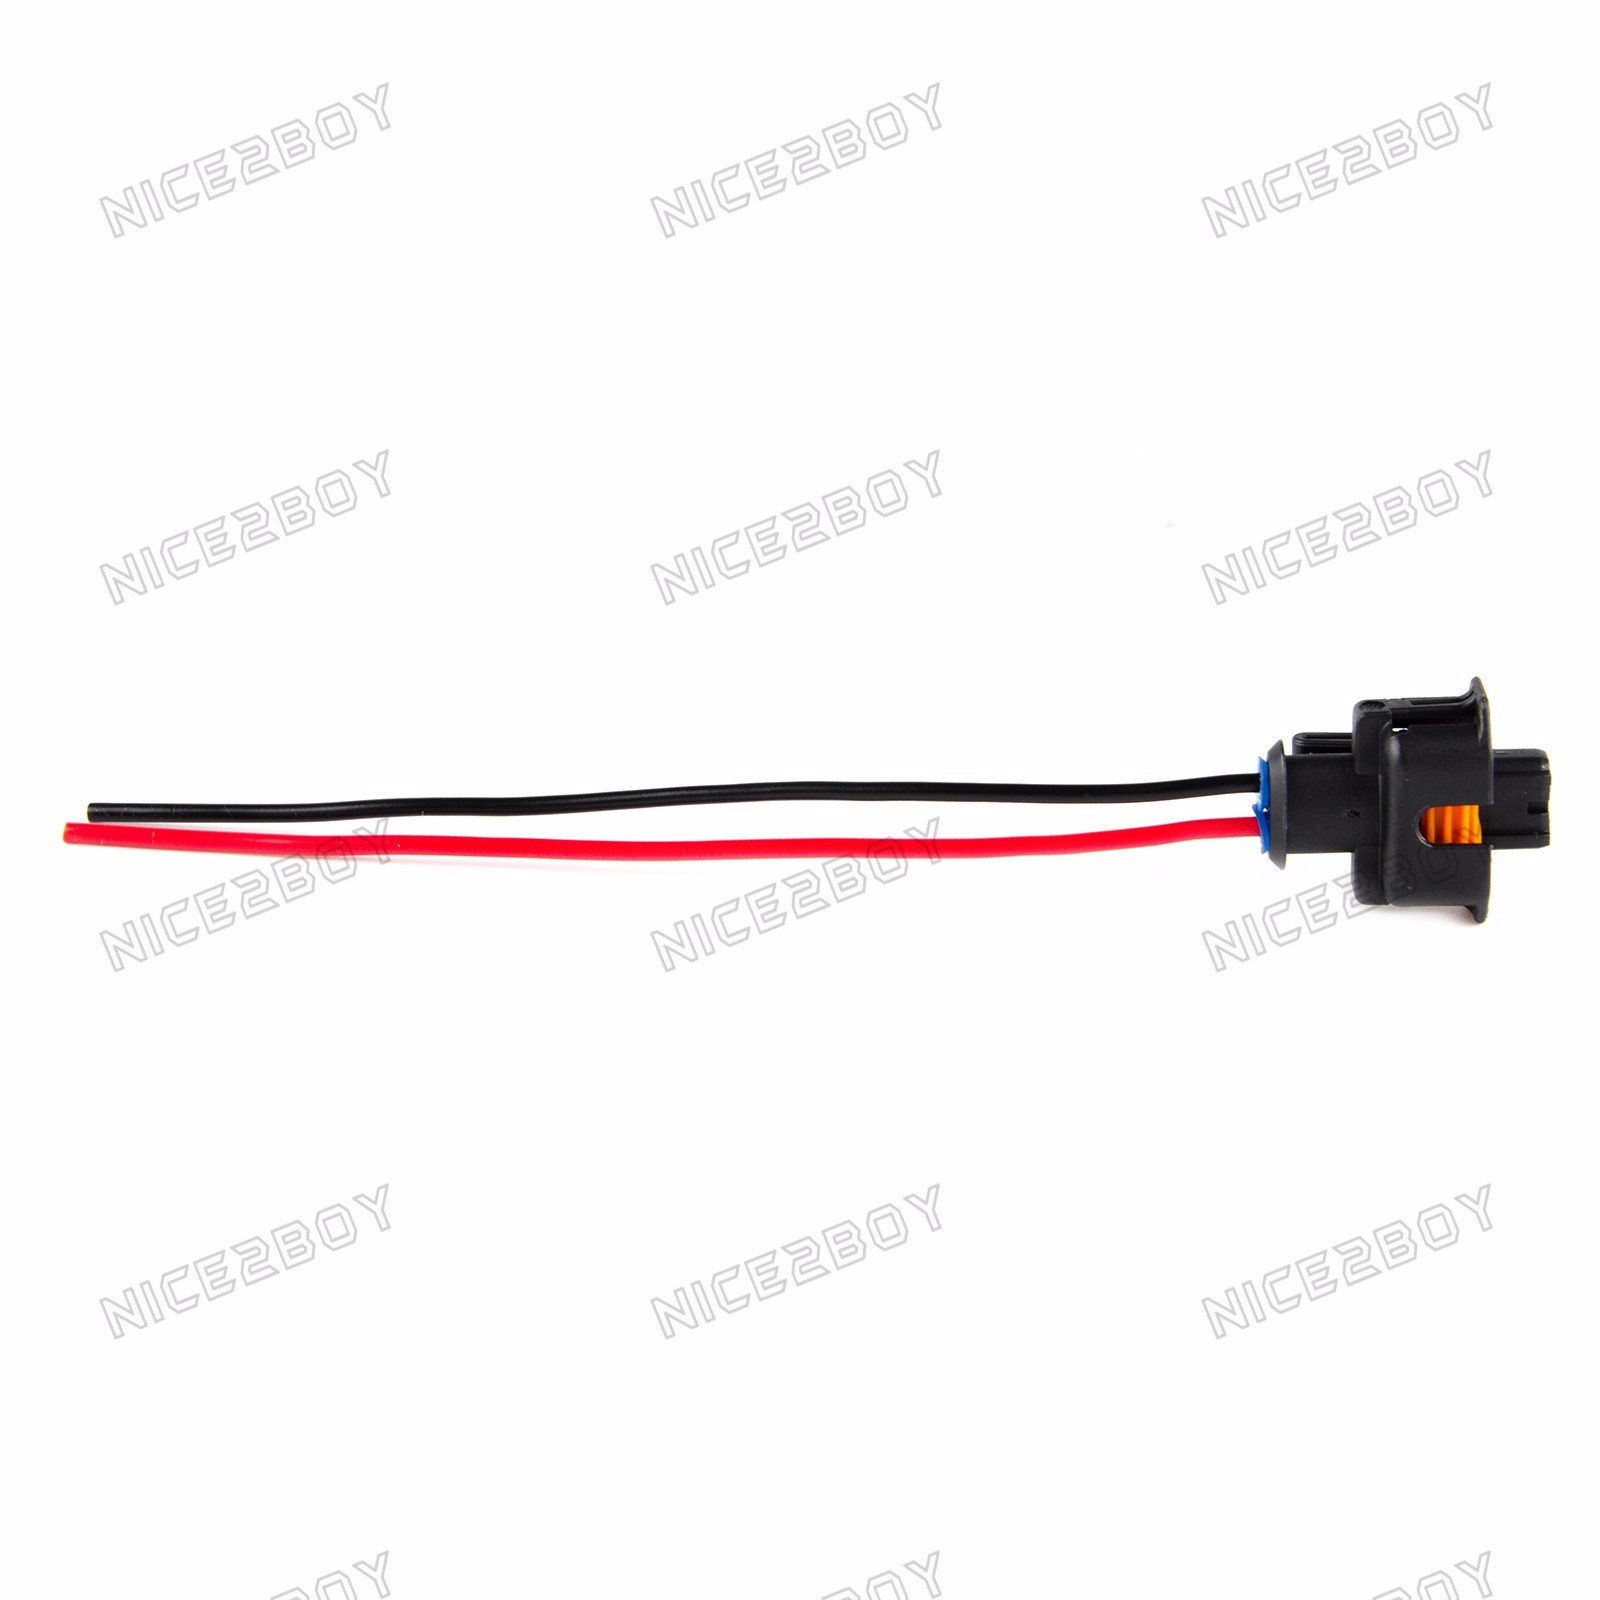 19 CDTI Diesel Fuel Injector Connector with Harness For Vauxhall